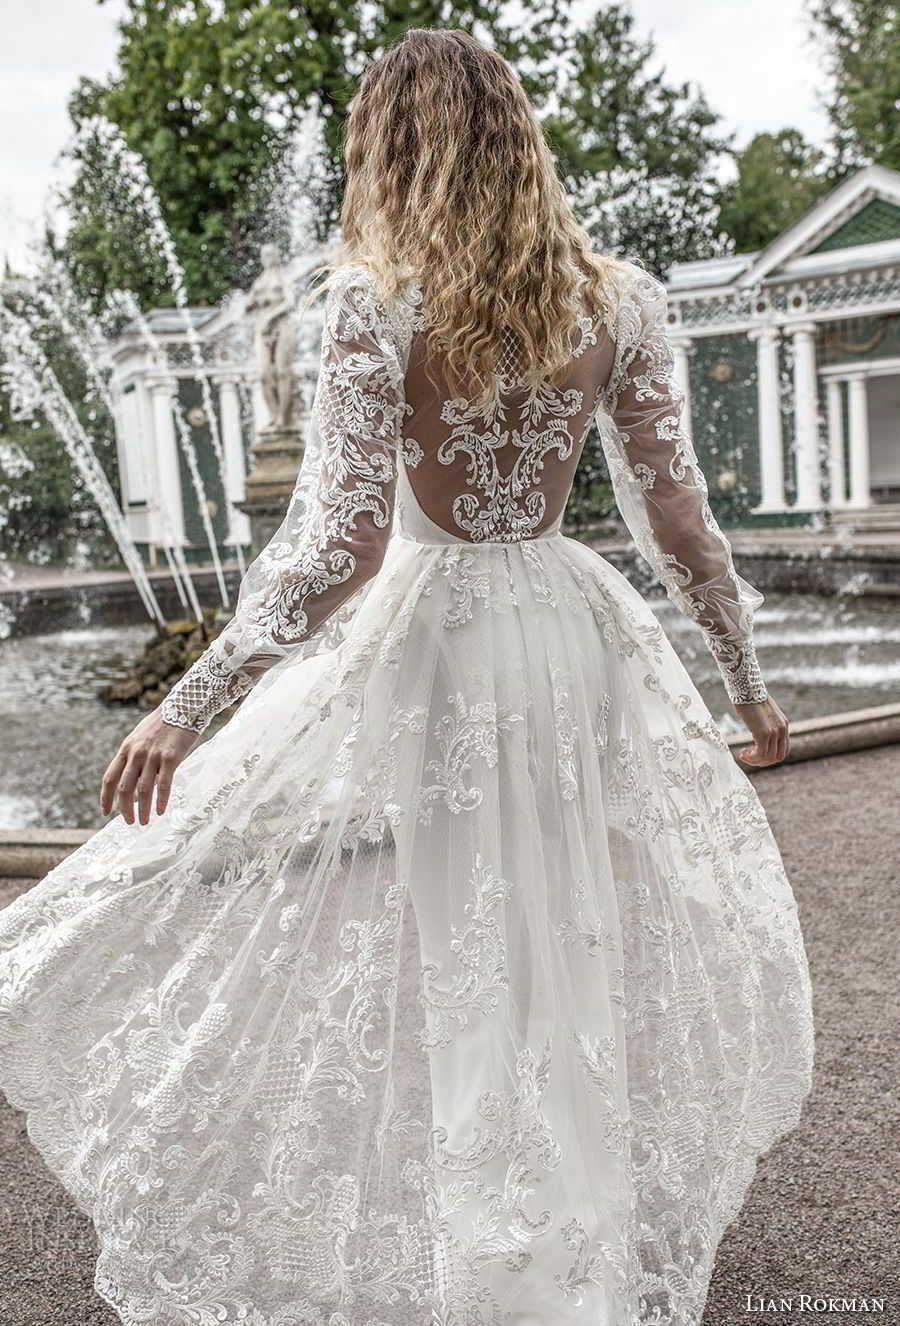 Lian rokman wedding dresses u ucstardustud bridal collection